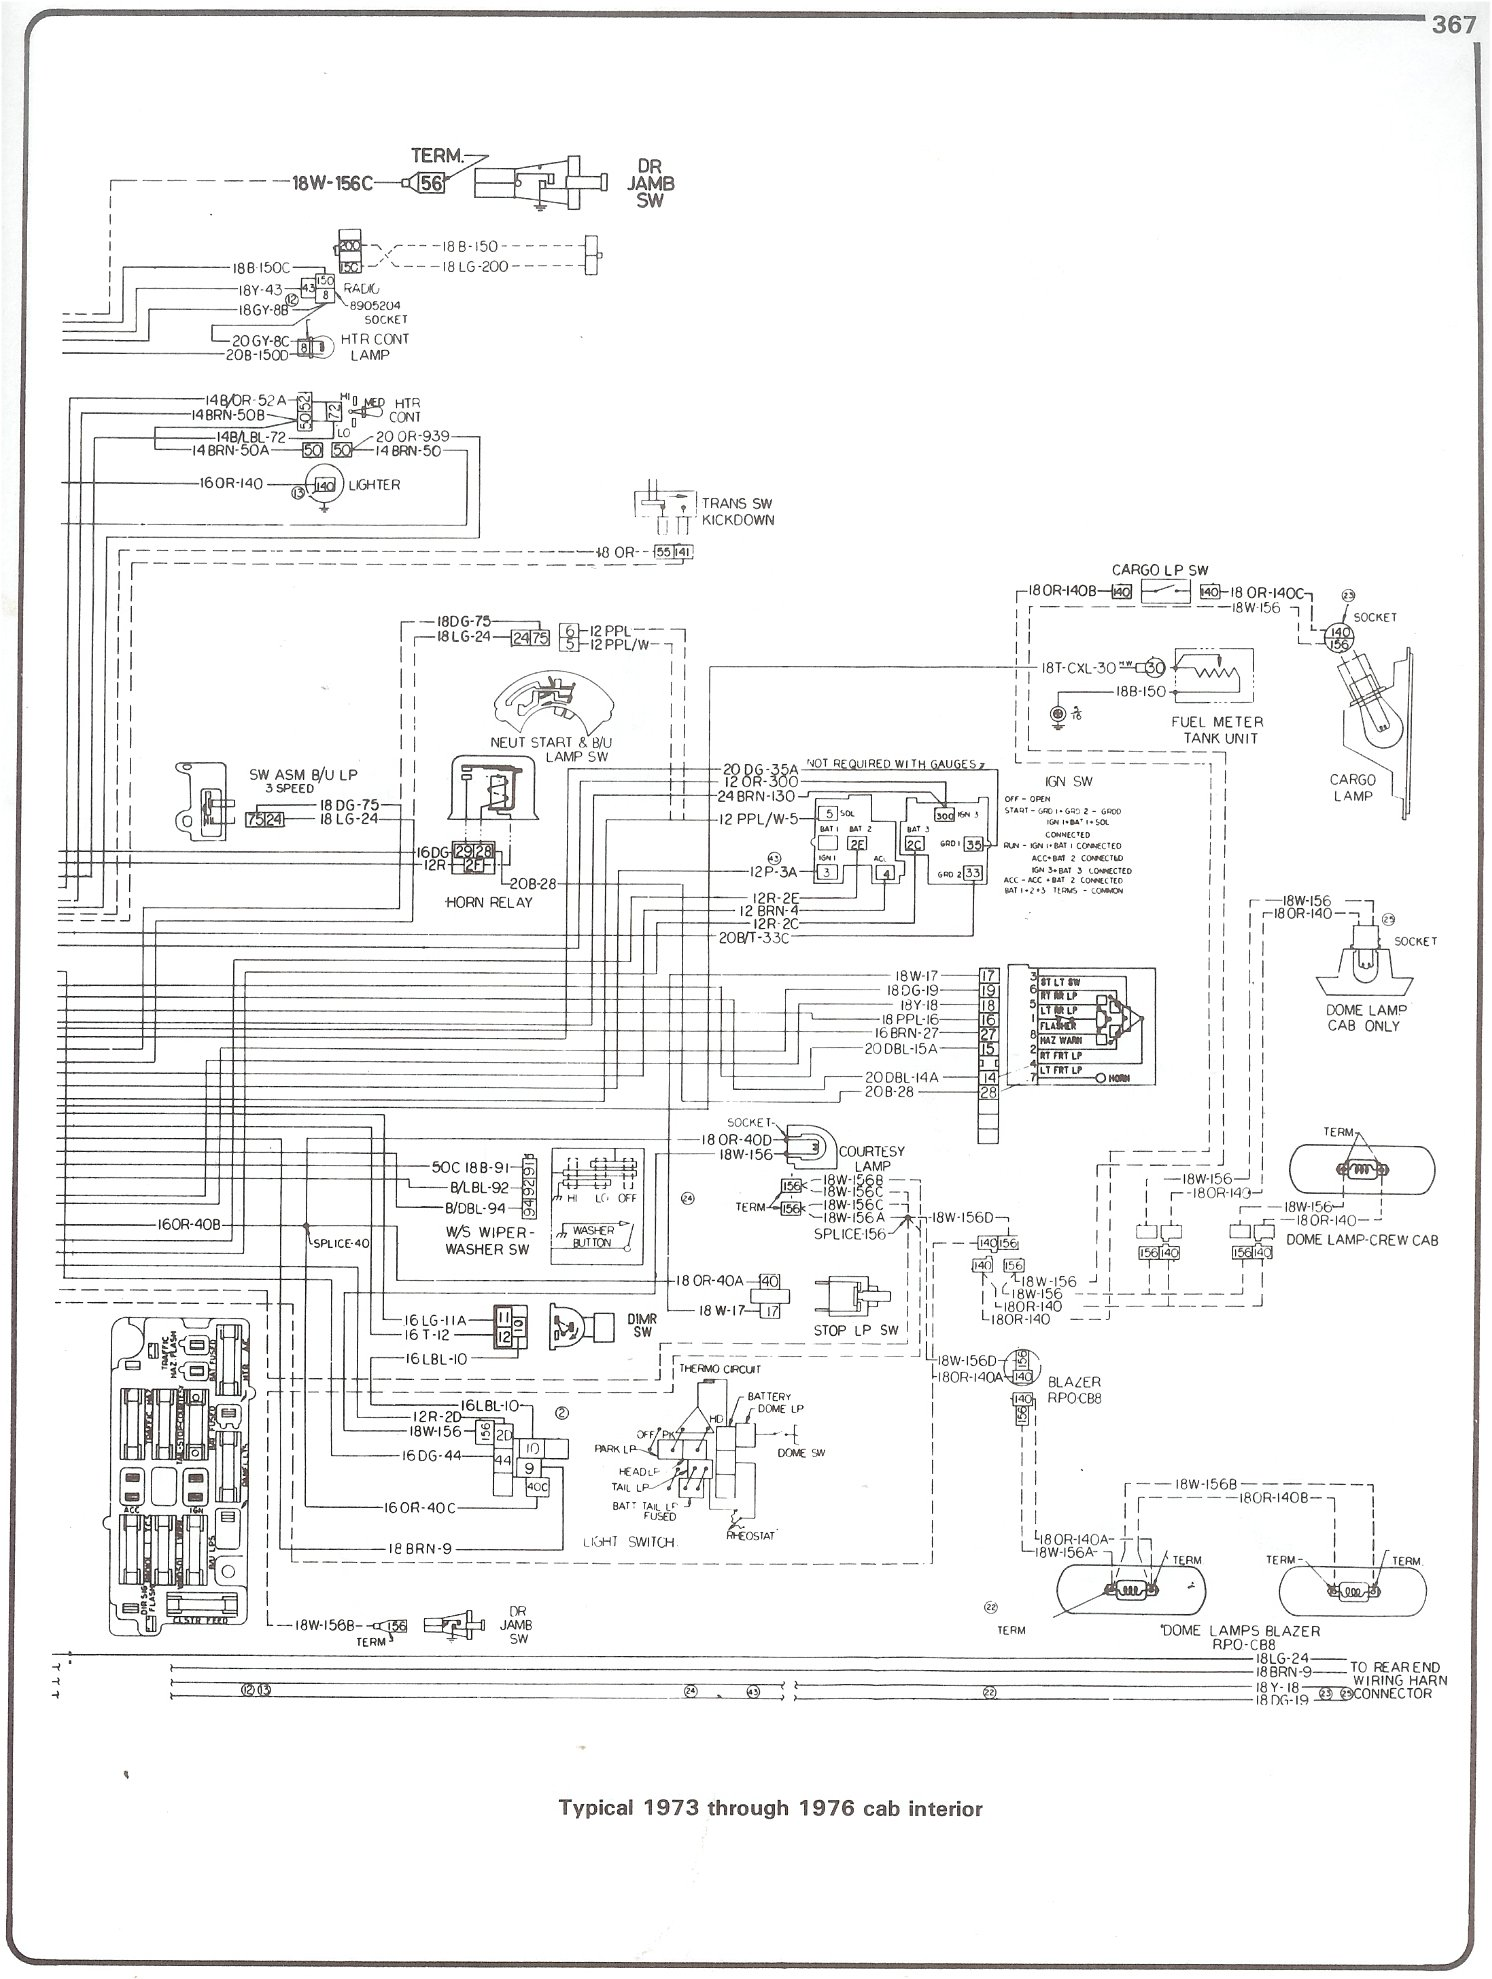 complete 73 87 wiring diagrams rh forum 73 87chevytrucks com 1970 GMC Truck Wiring Diagram 1966 GMC Truck Wiring Diagrams